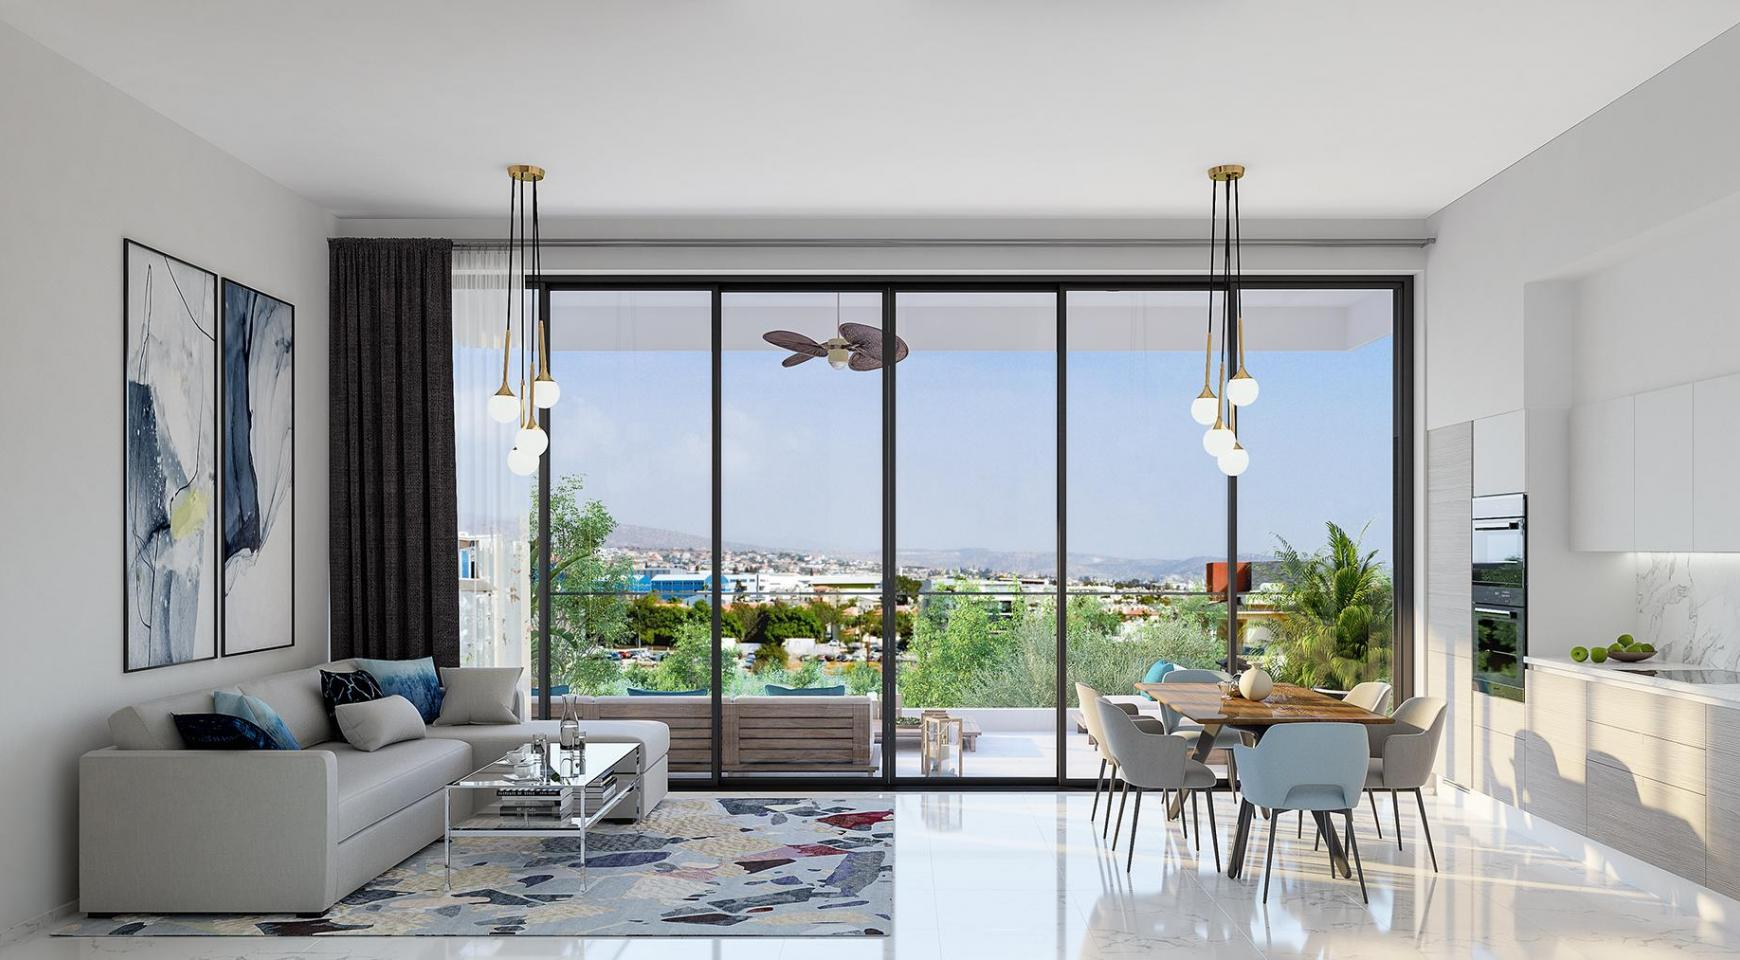 Urban City Residences, Block B. New Spacious 2 Bedroom Apartment 302 in the City Centre - 2